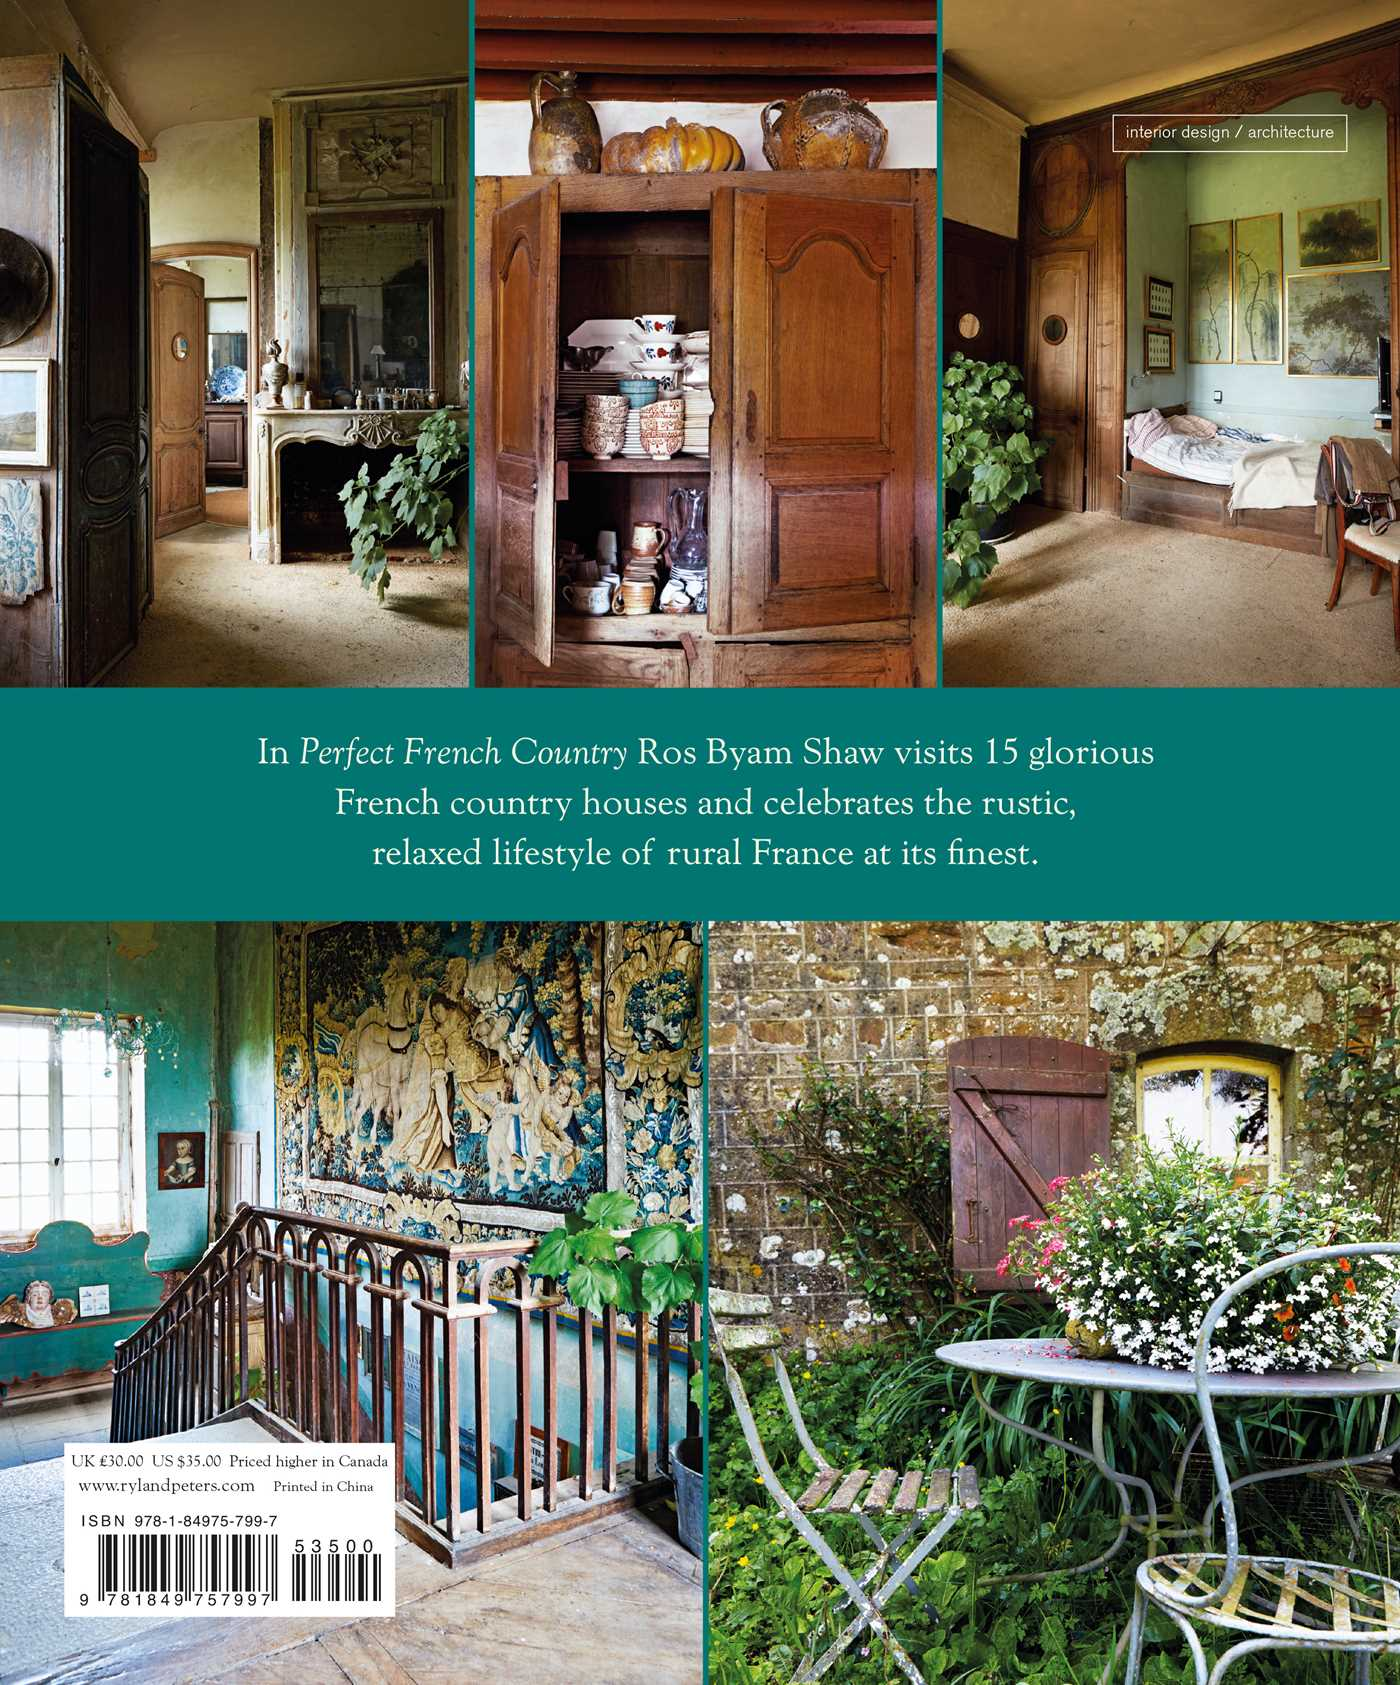 Perfect French Country  Book By Ros Byam Shaw Official